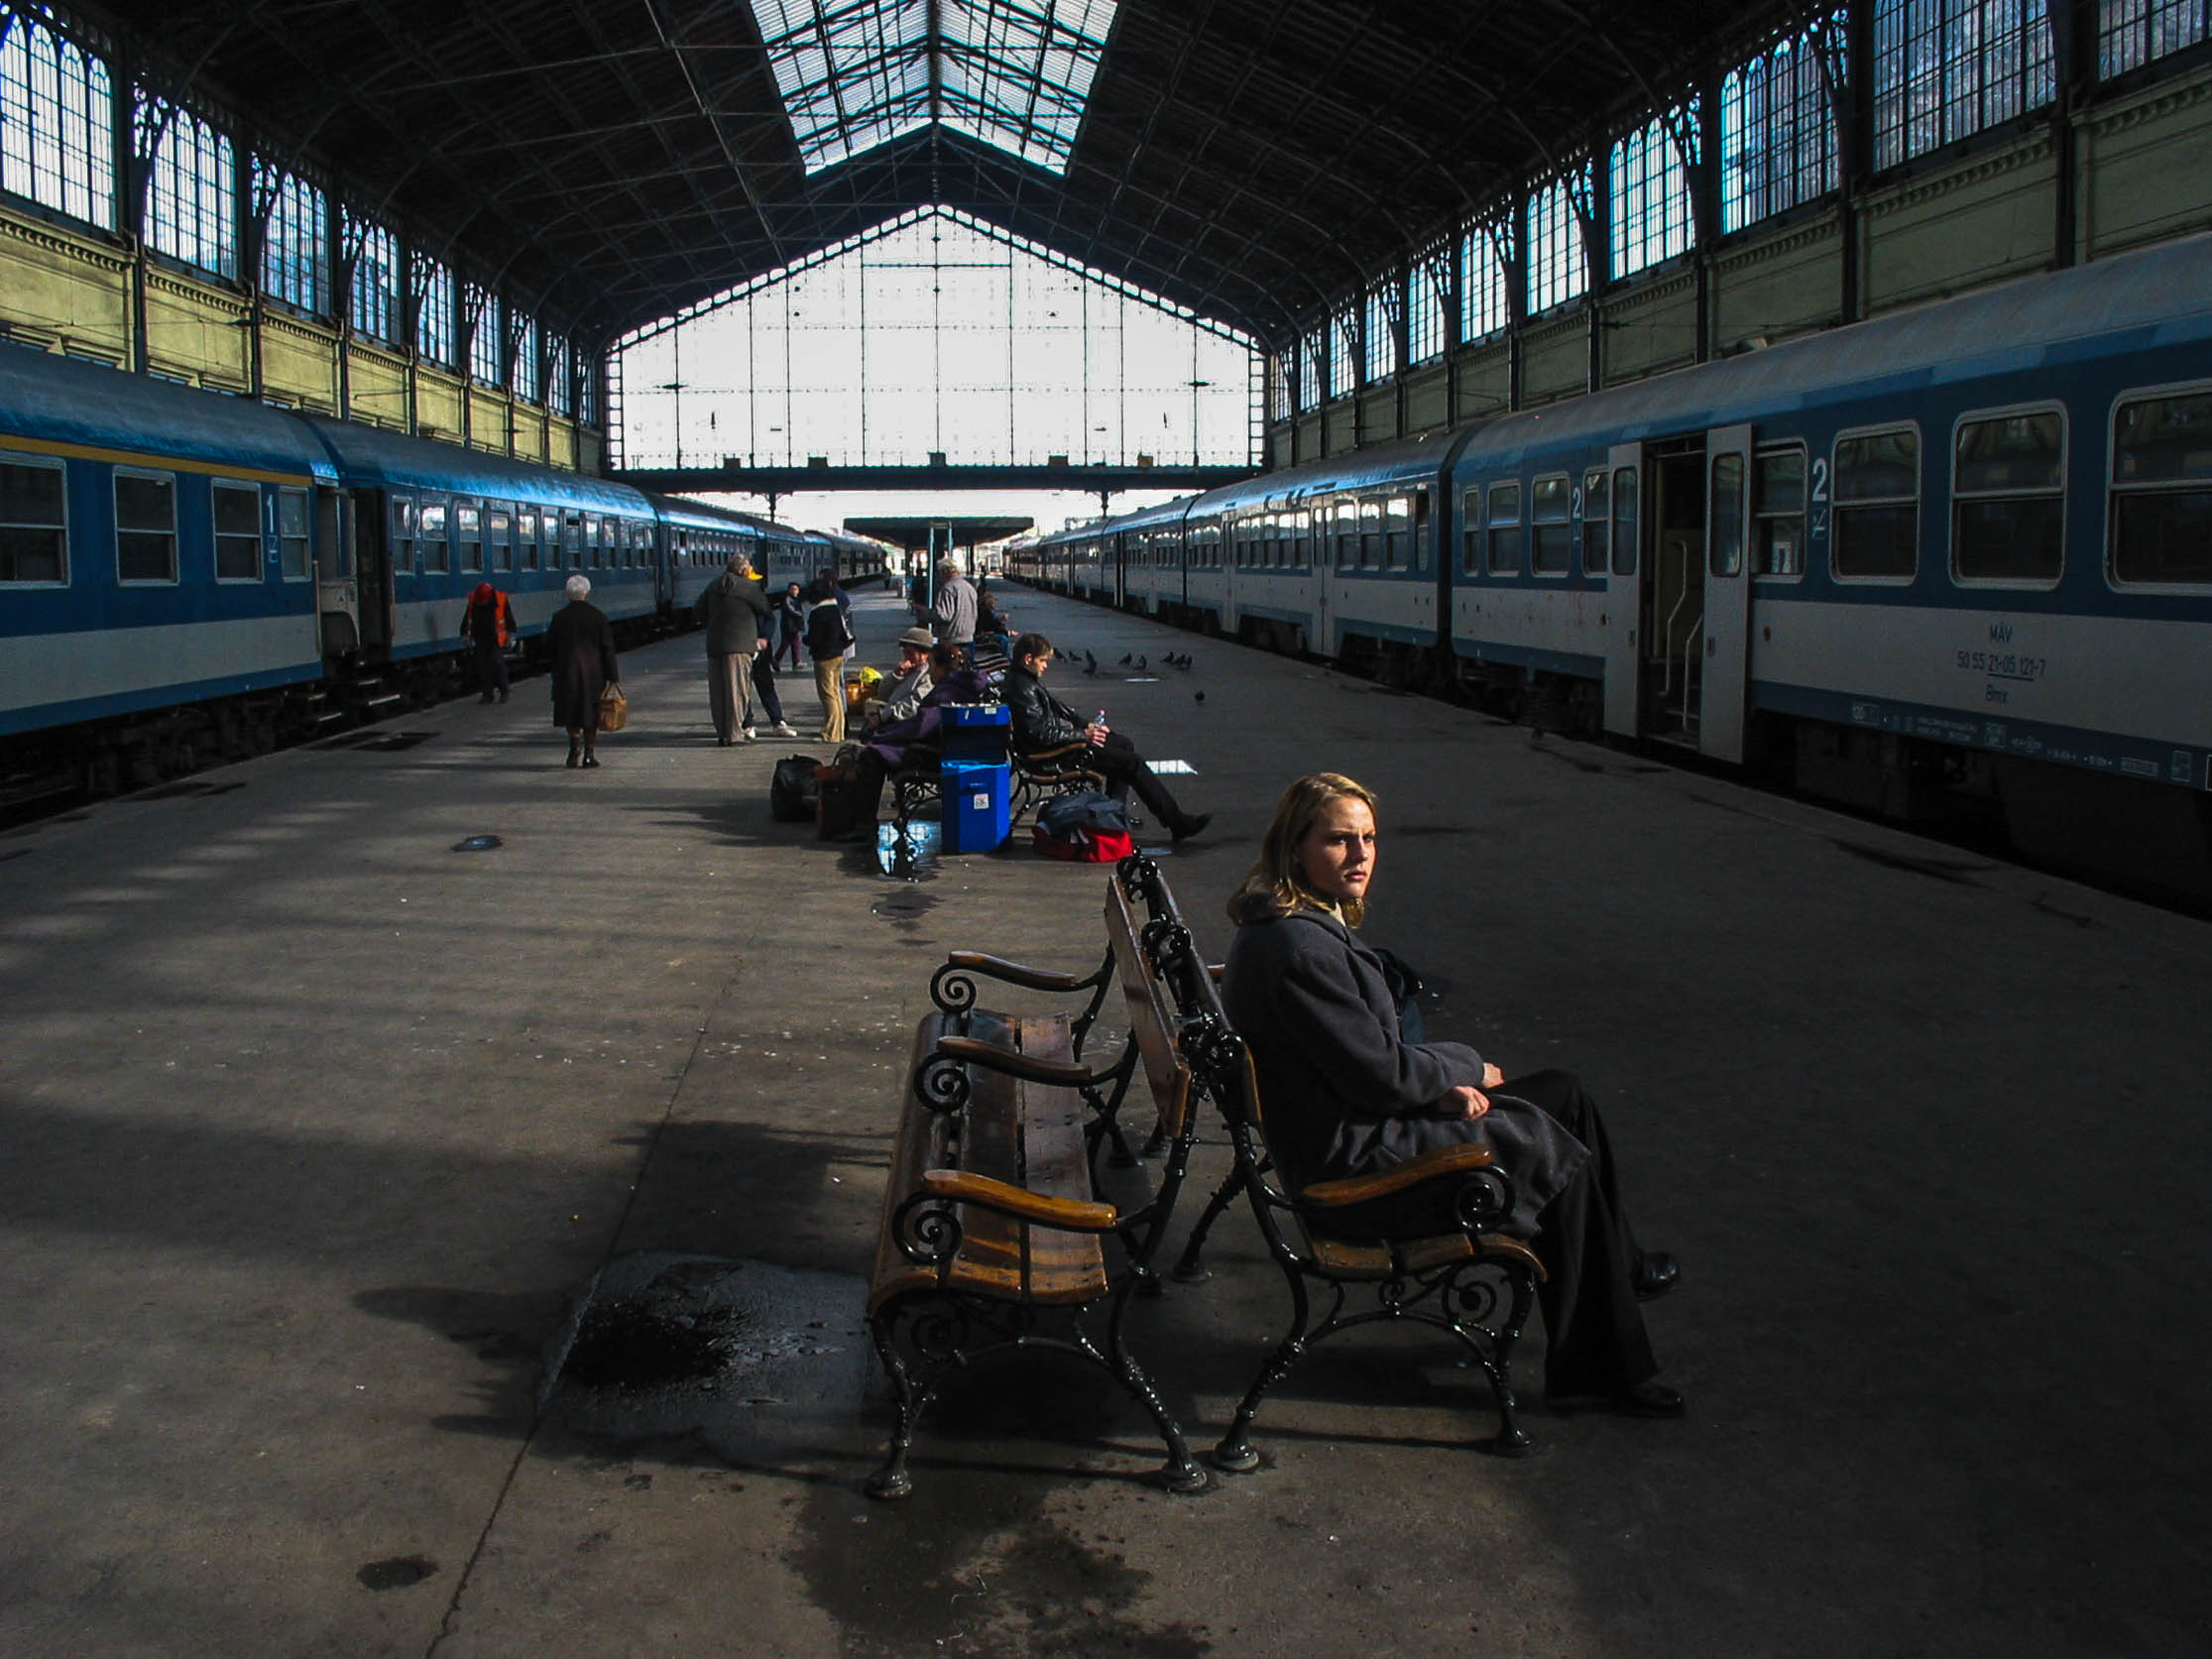 Waiting for the train, Budapest